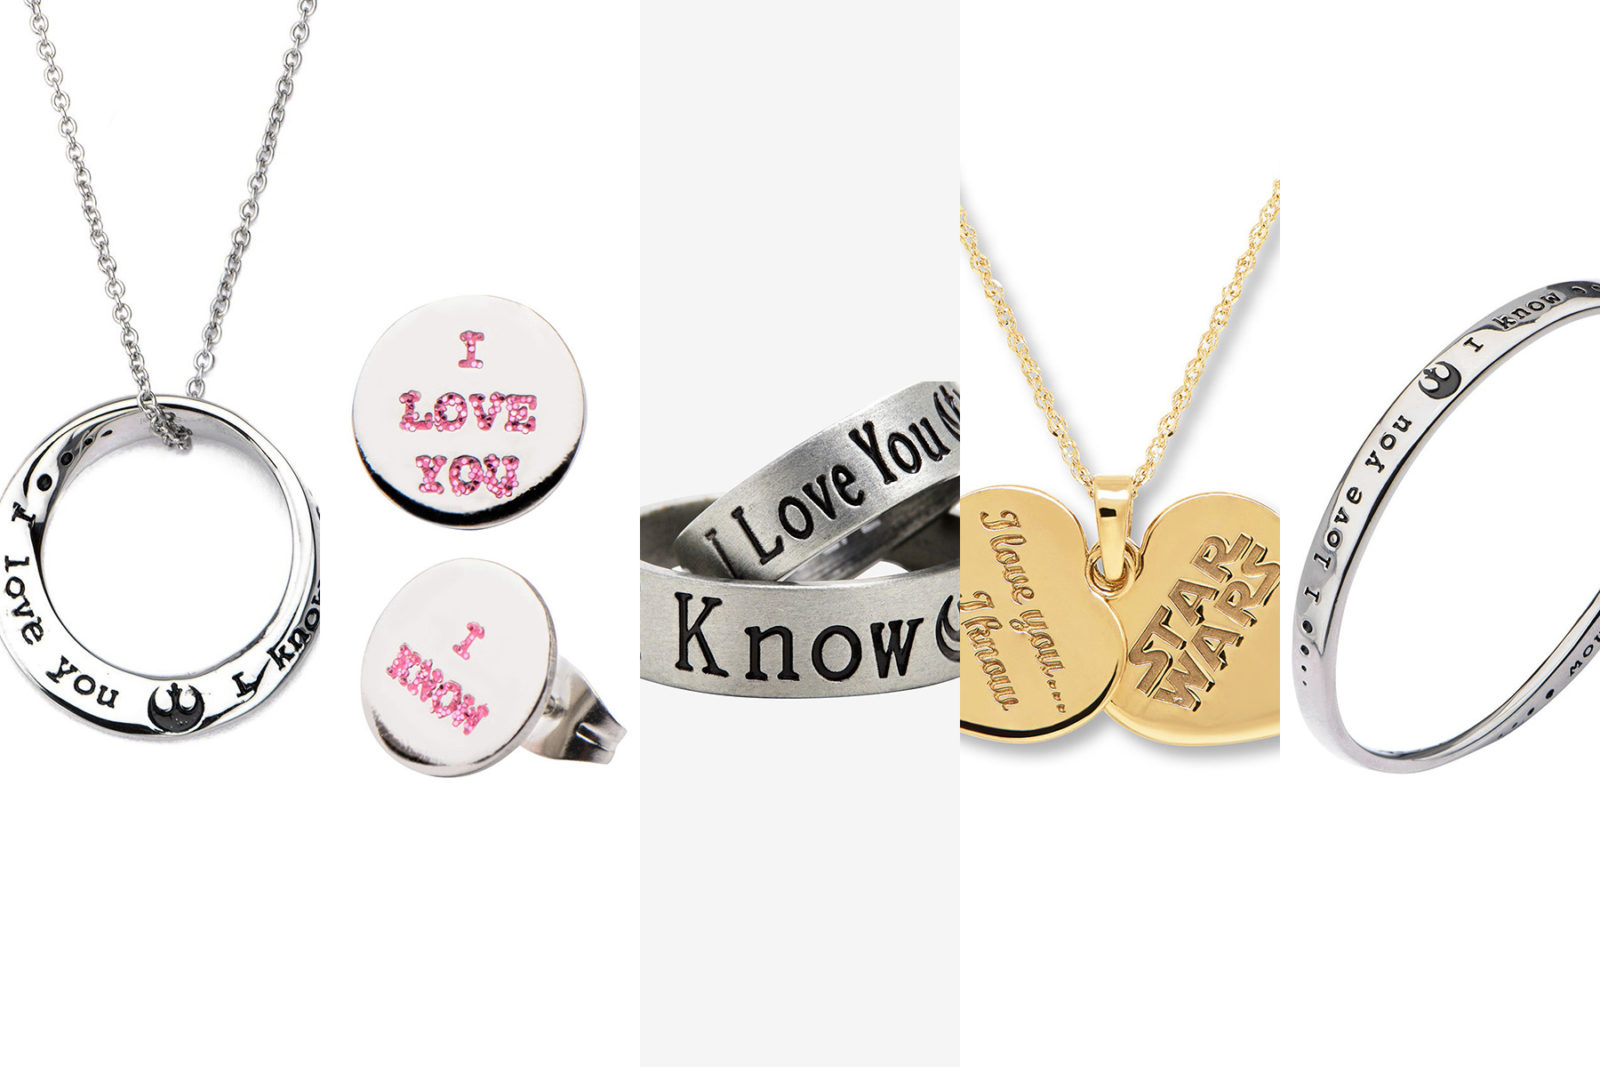 Leia's List - Star Wars Han Solo & Princess Leia I Love You I know jewelry